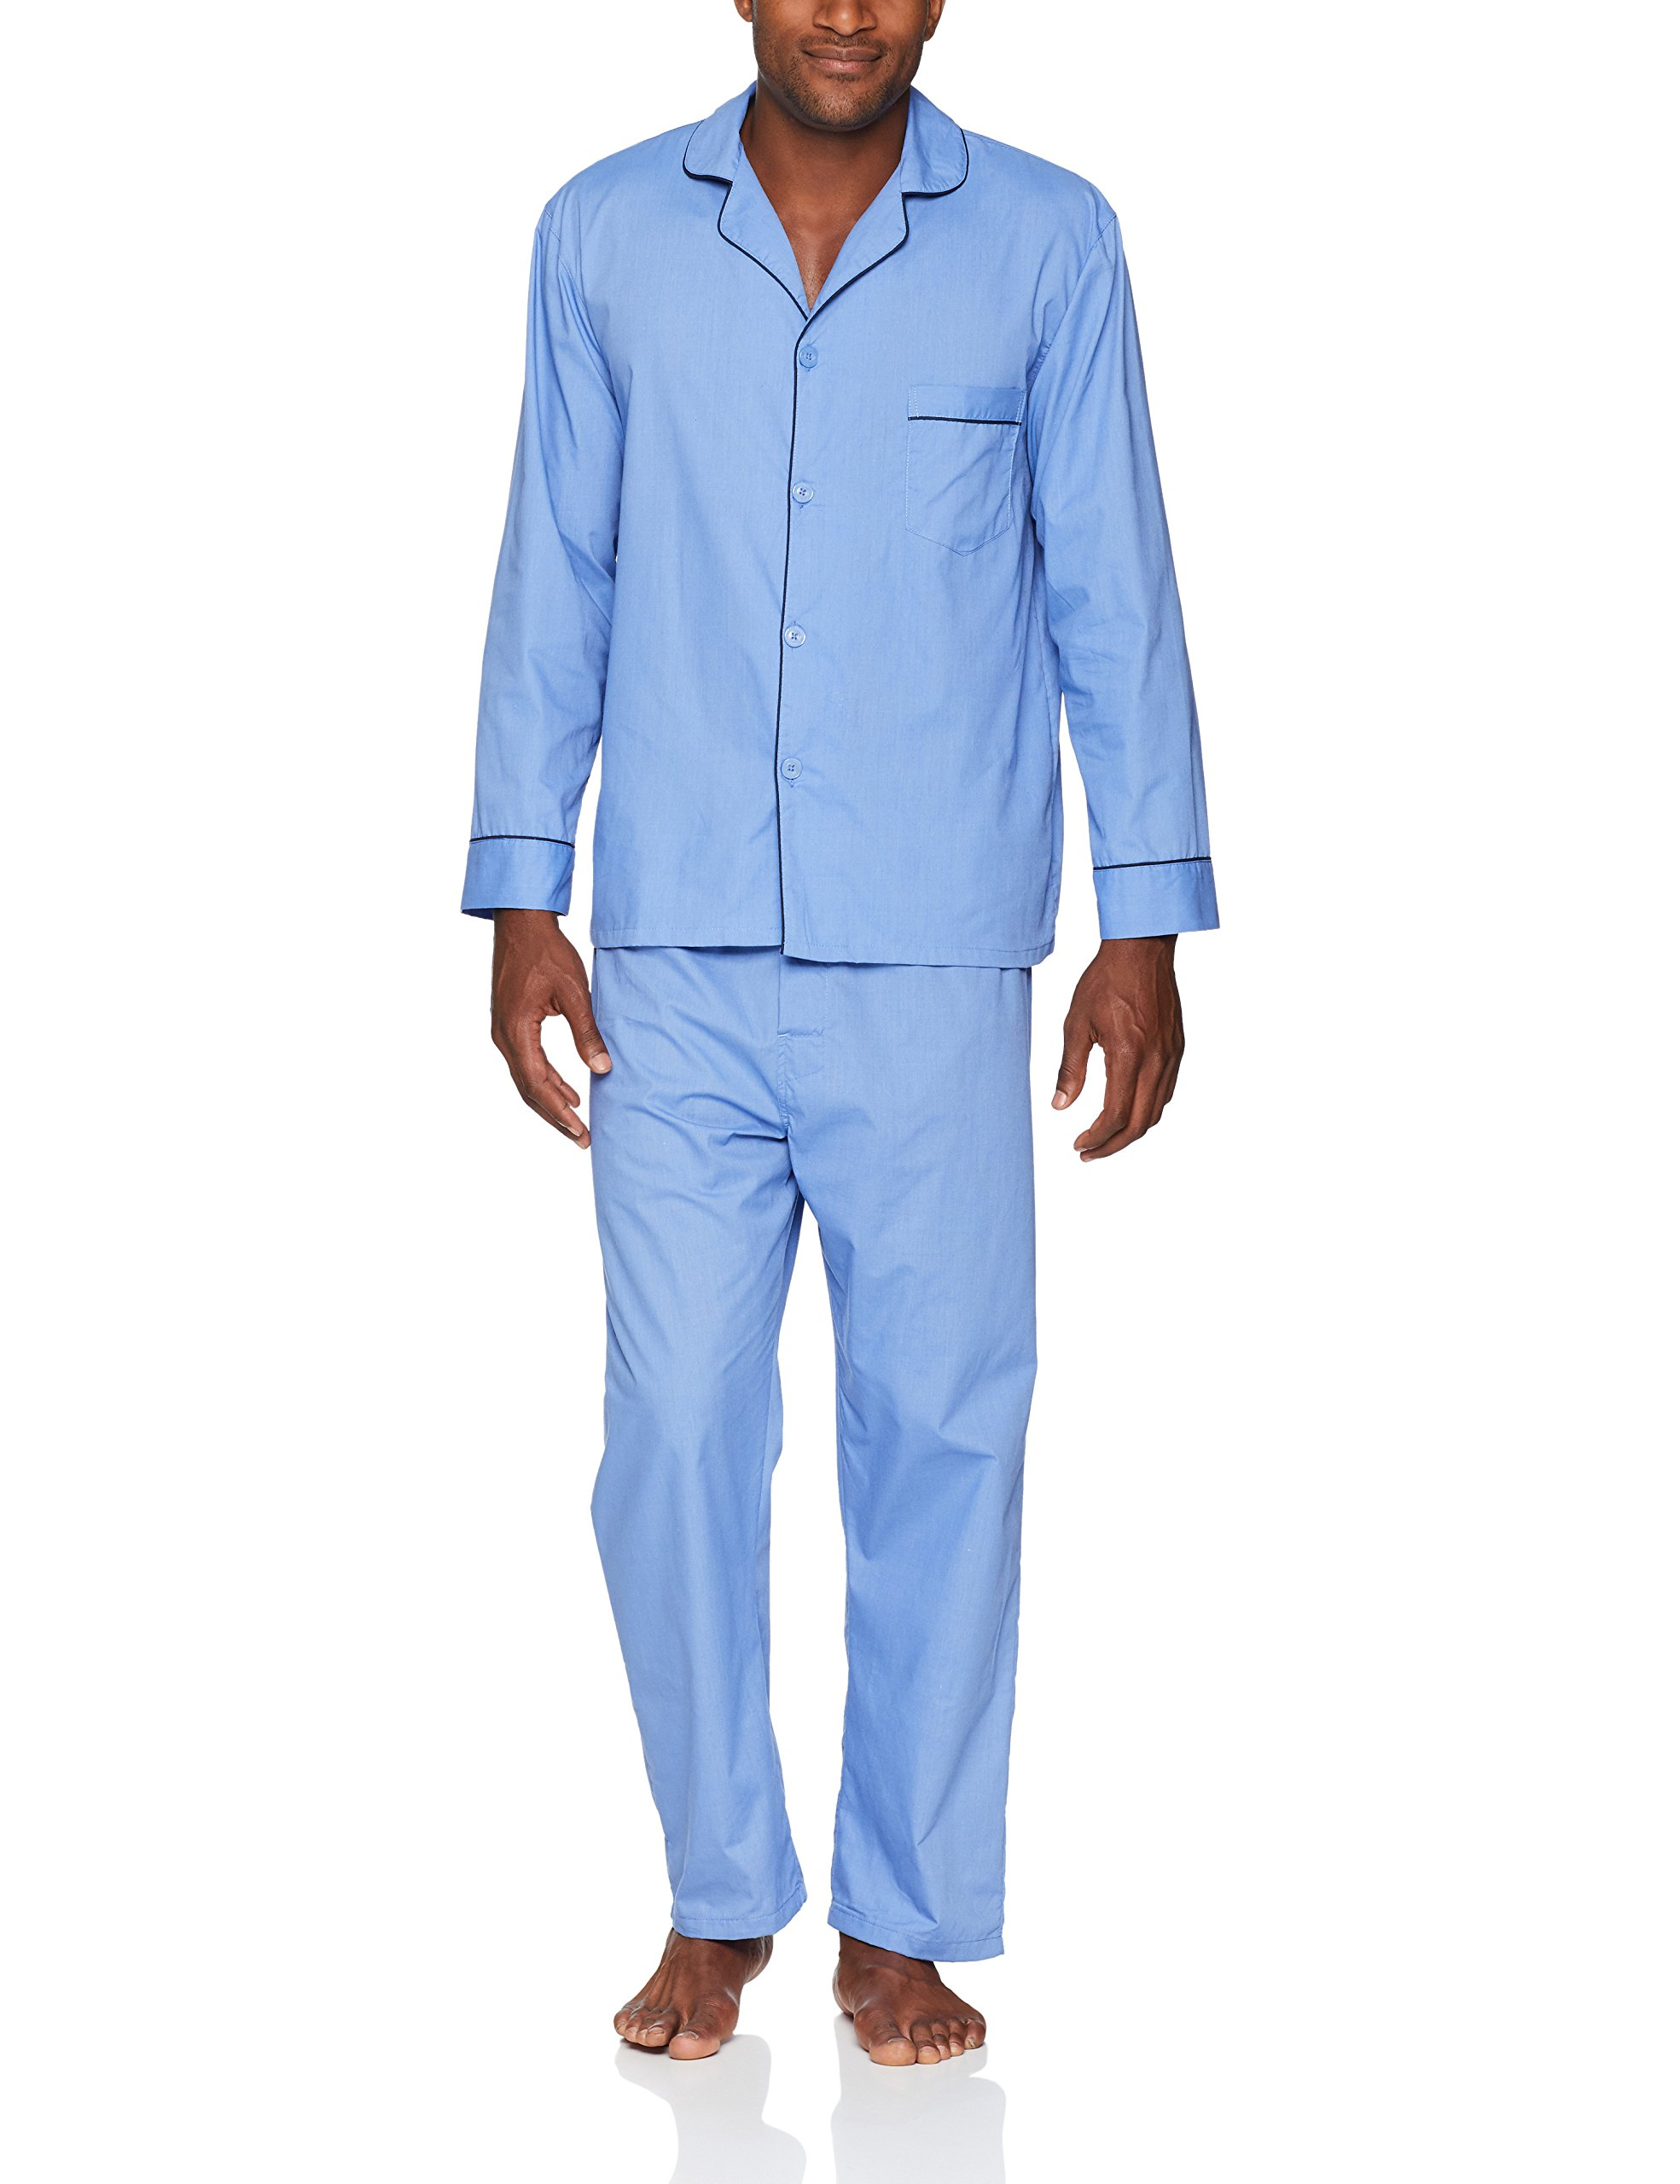 Hanes Men's Long Sleeve Leg Pajama Gift Set, Blue, Large, Medium Blue Solid, Large by Hanes